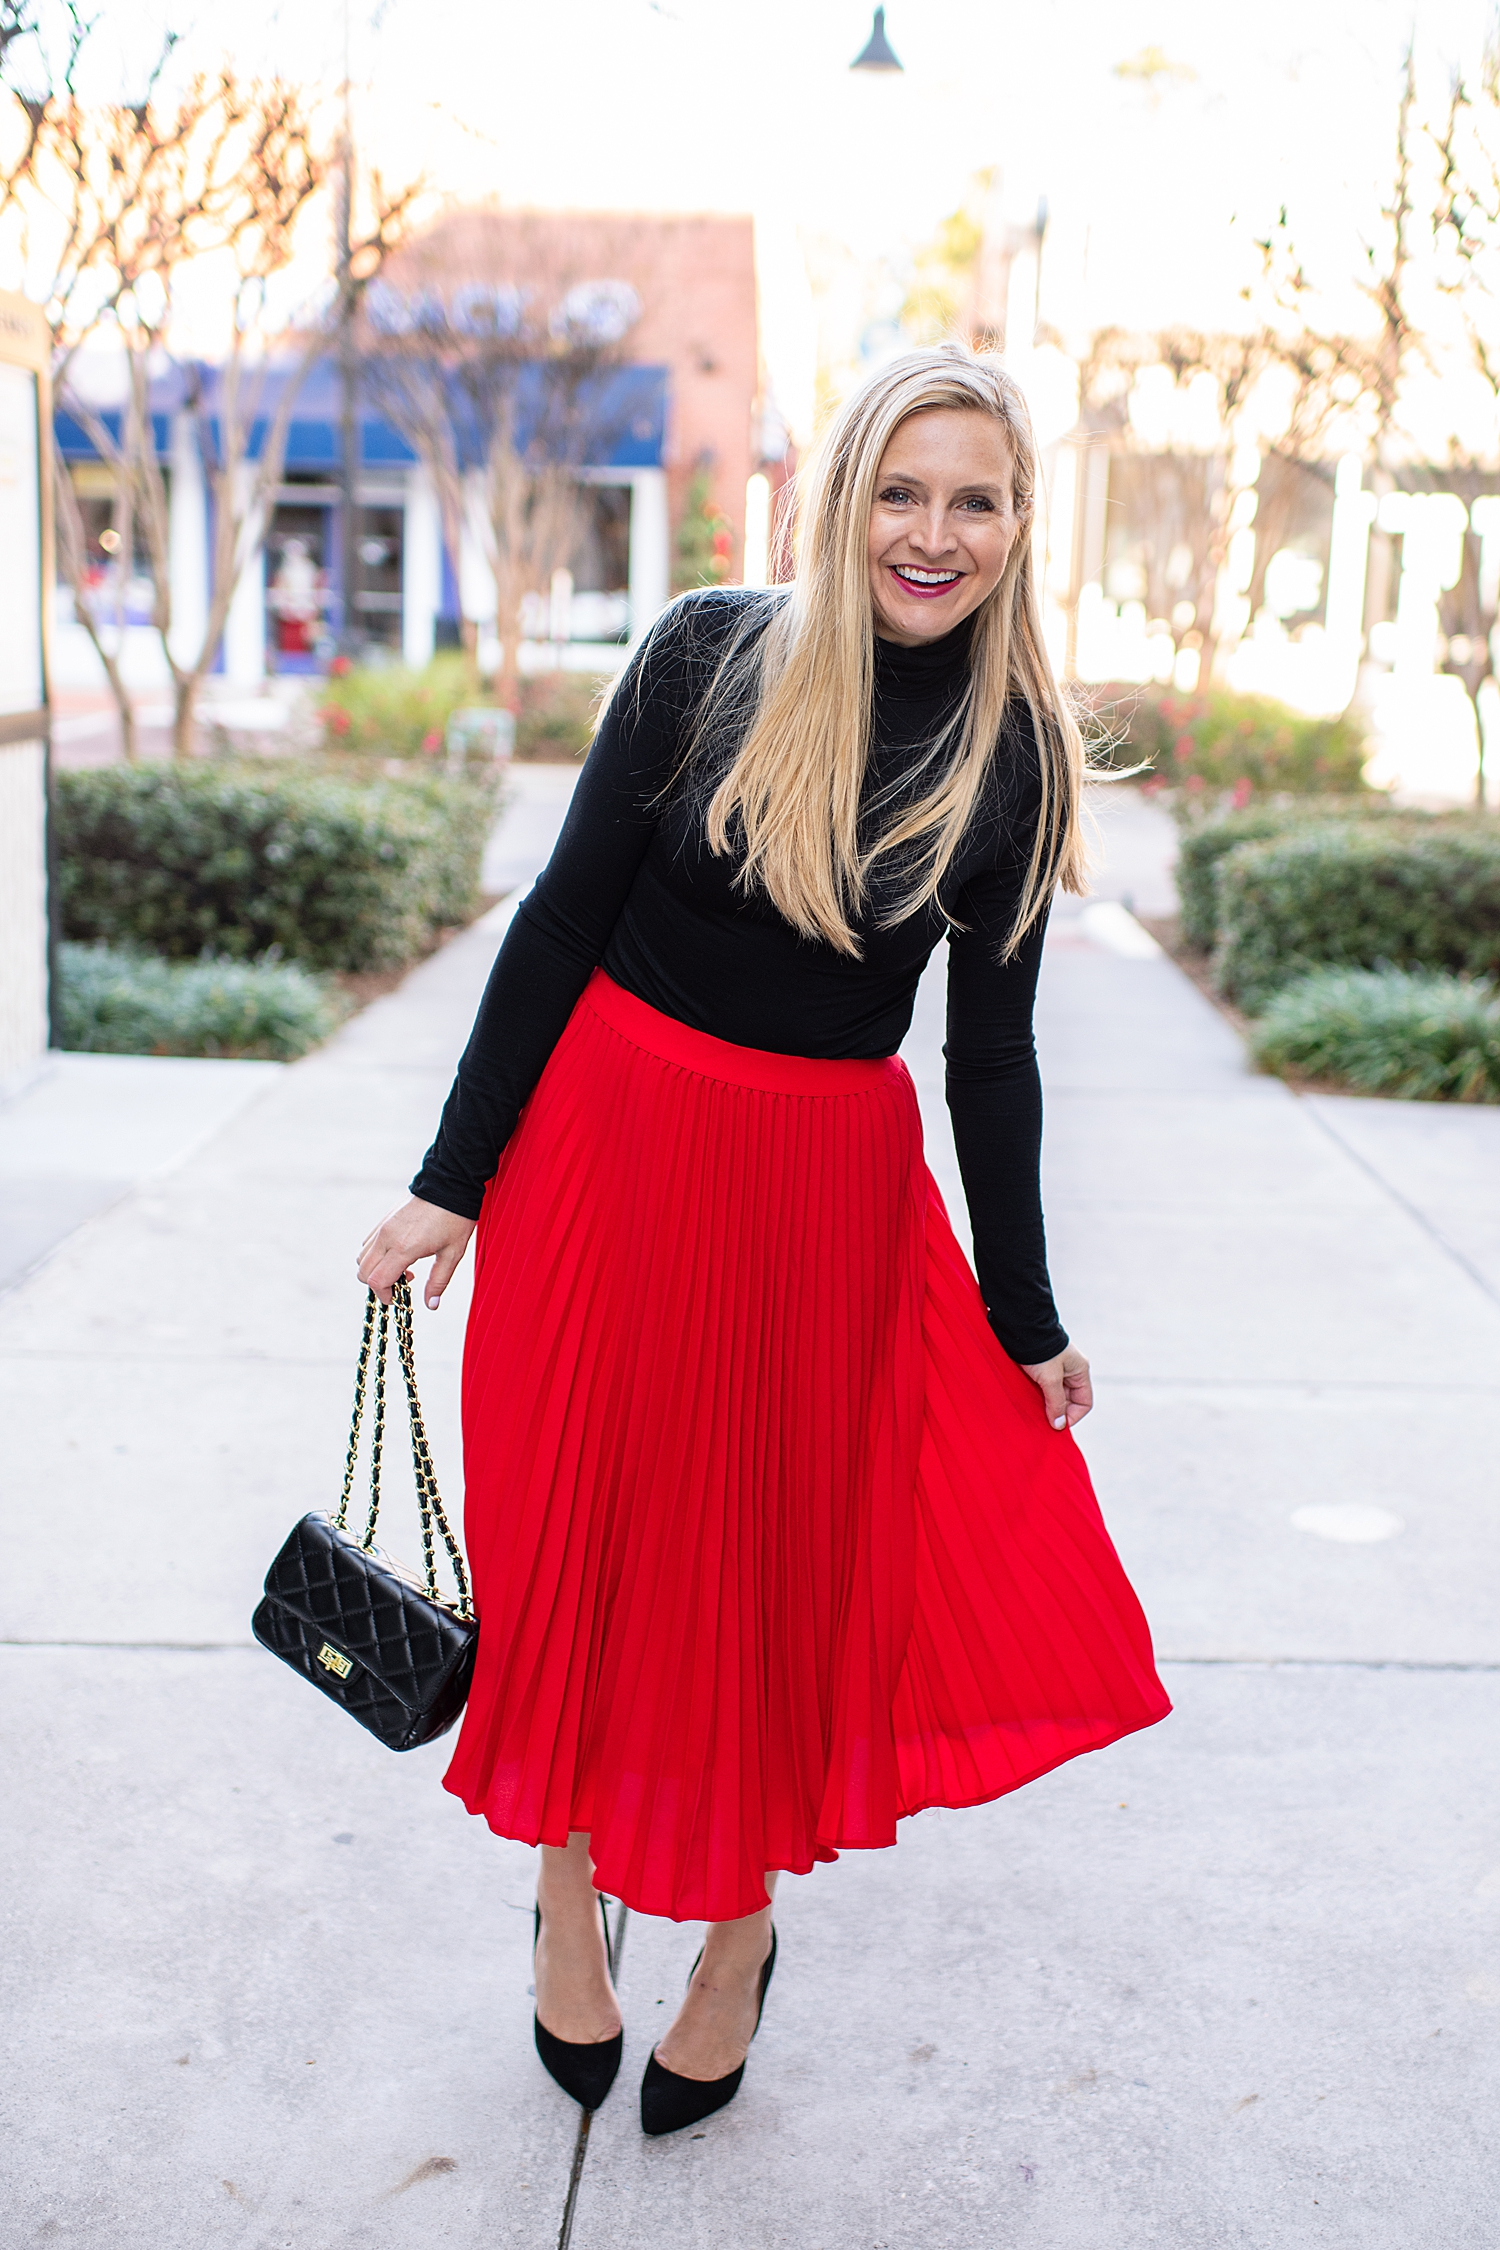 Winter fashion Amazon Favorites featured by top Houston fashion blogger, Fancy Ashley: image of a woman wearing a J.Crew black turtleneck, red high waist pleated skirt, black heels pumps and a quilted leather shoulder bag